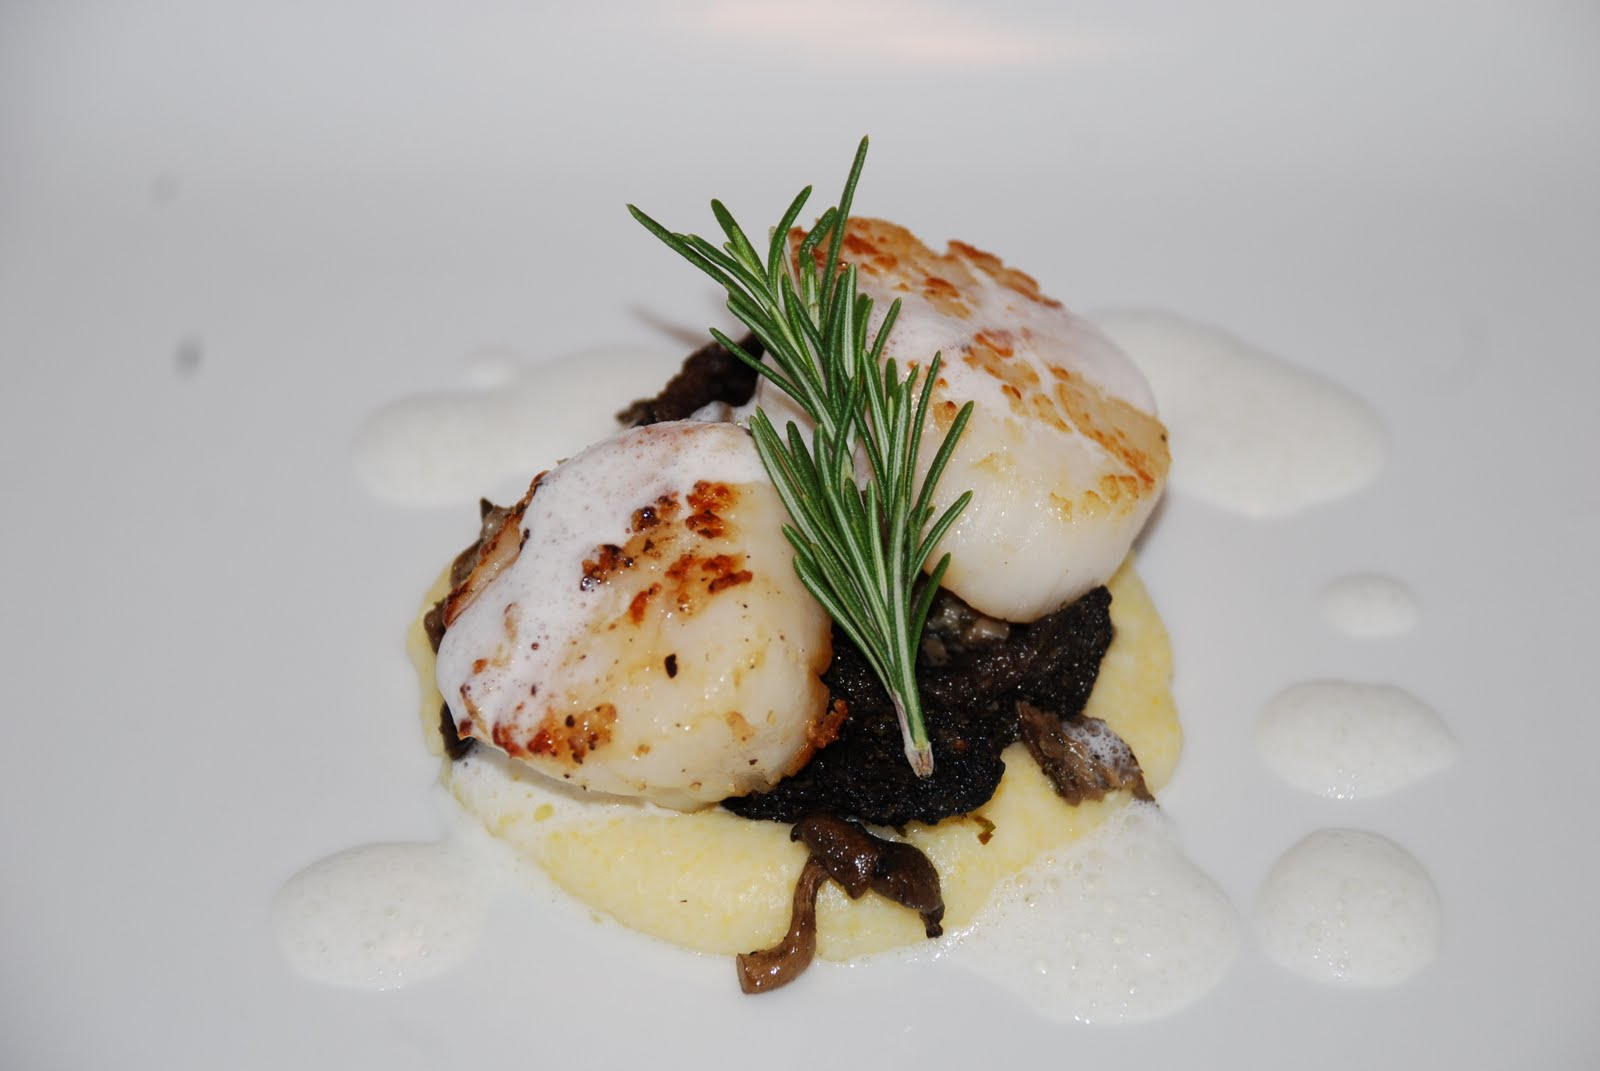 Seared+Scallops,+Wild+Mushrooms+%26+Soft+Polenta+with+Fennel+Foam.JPG